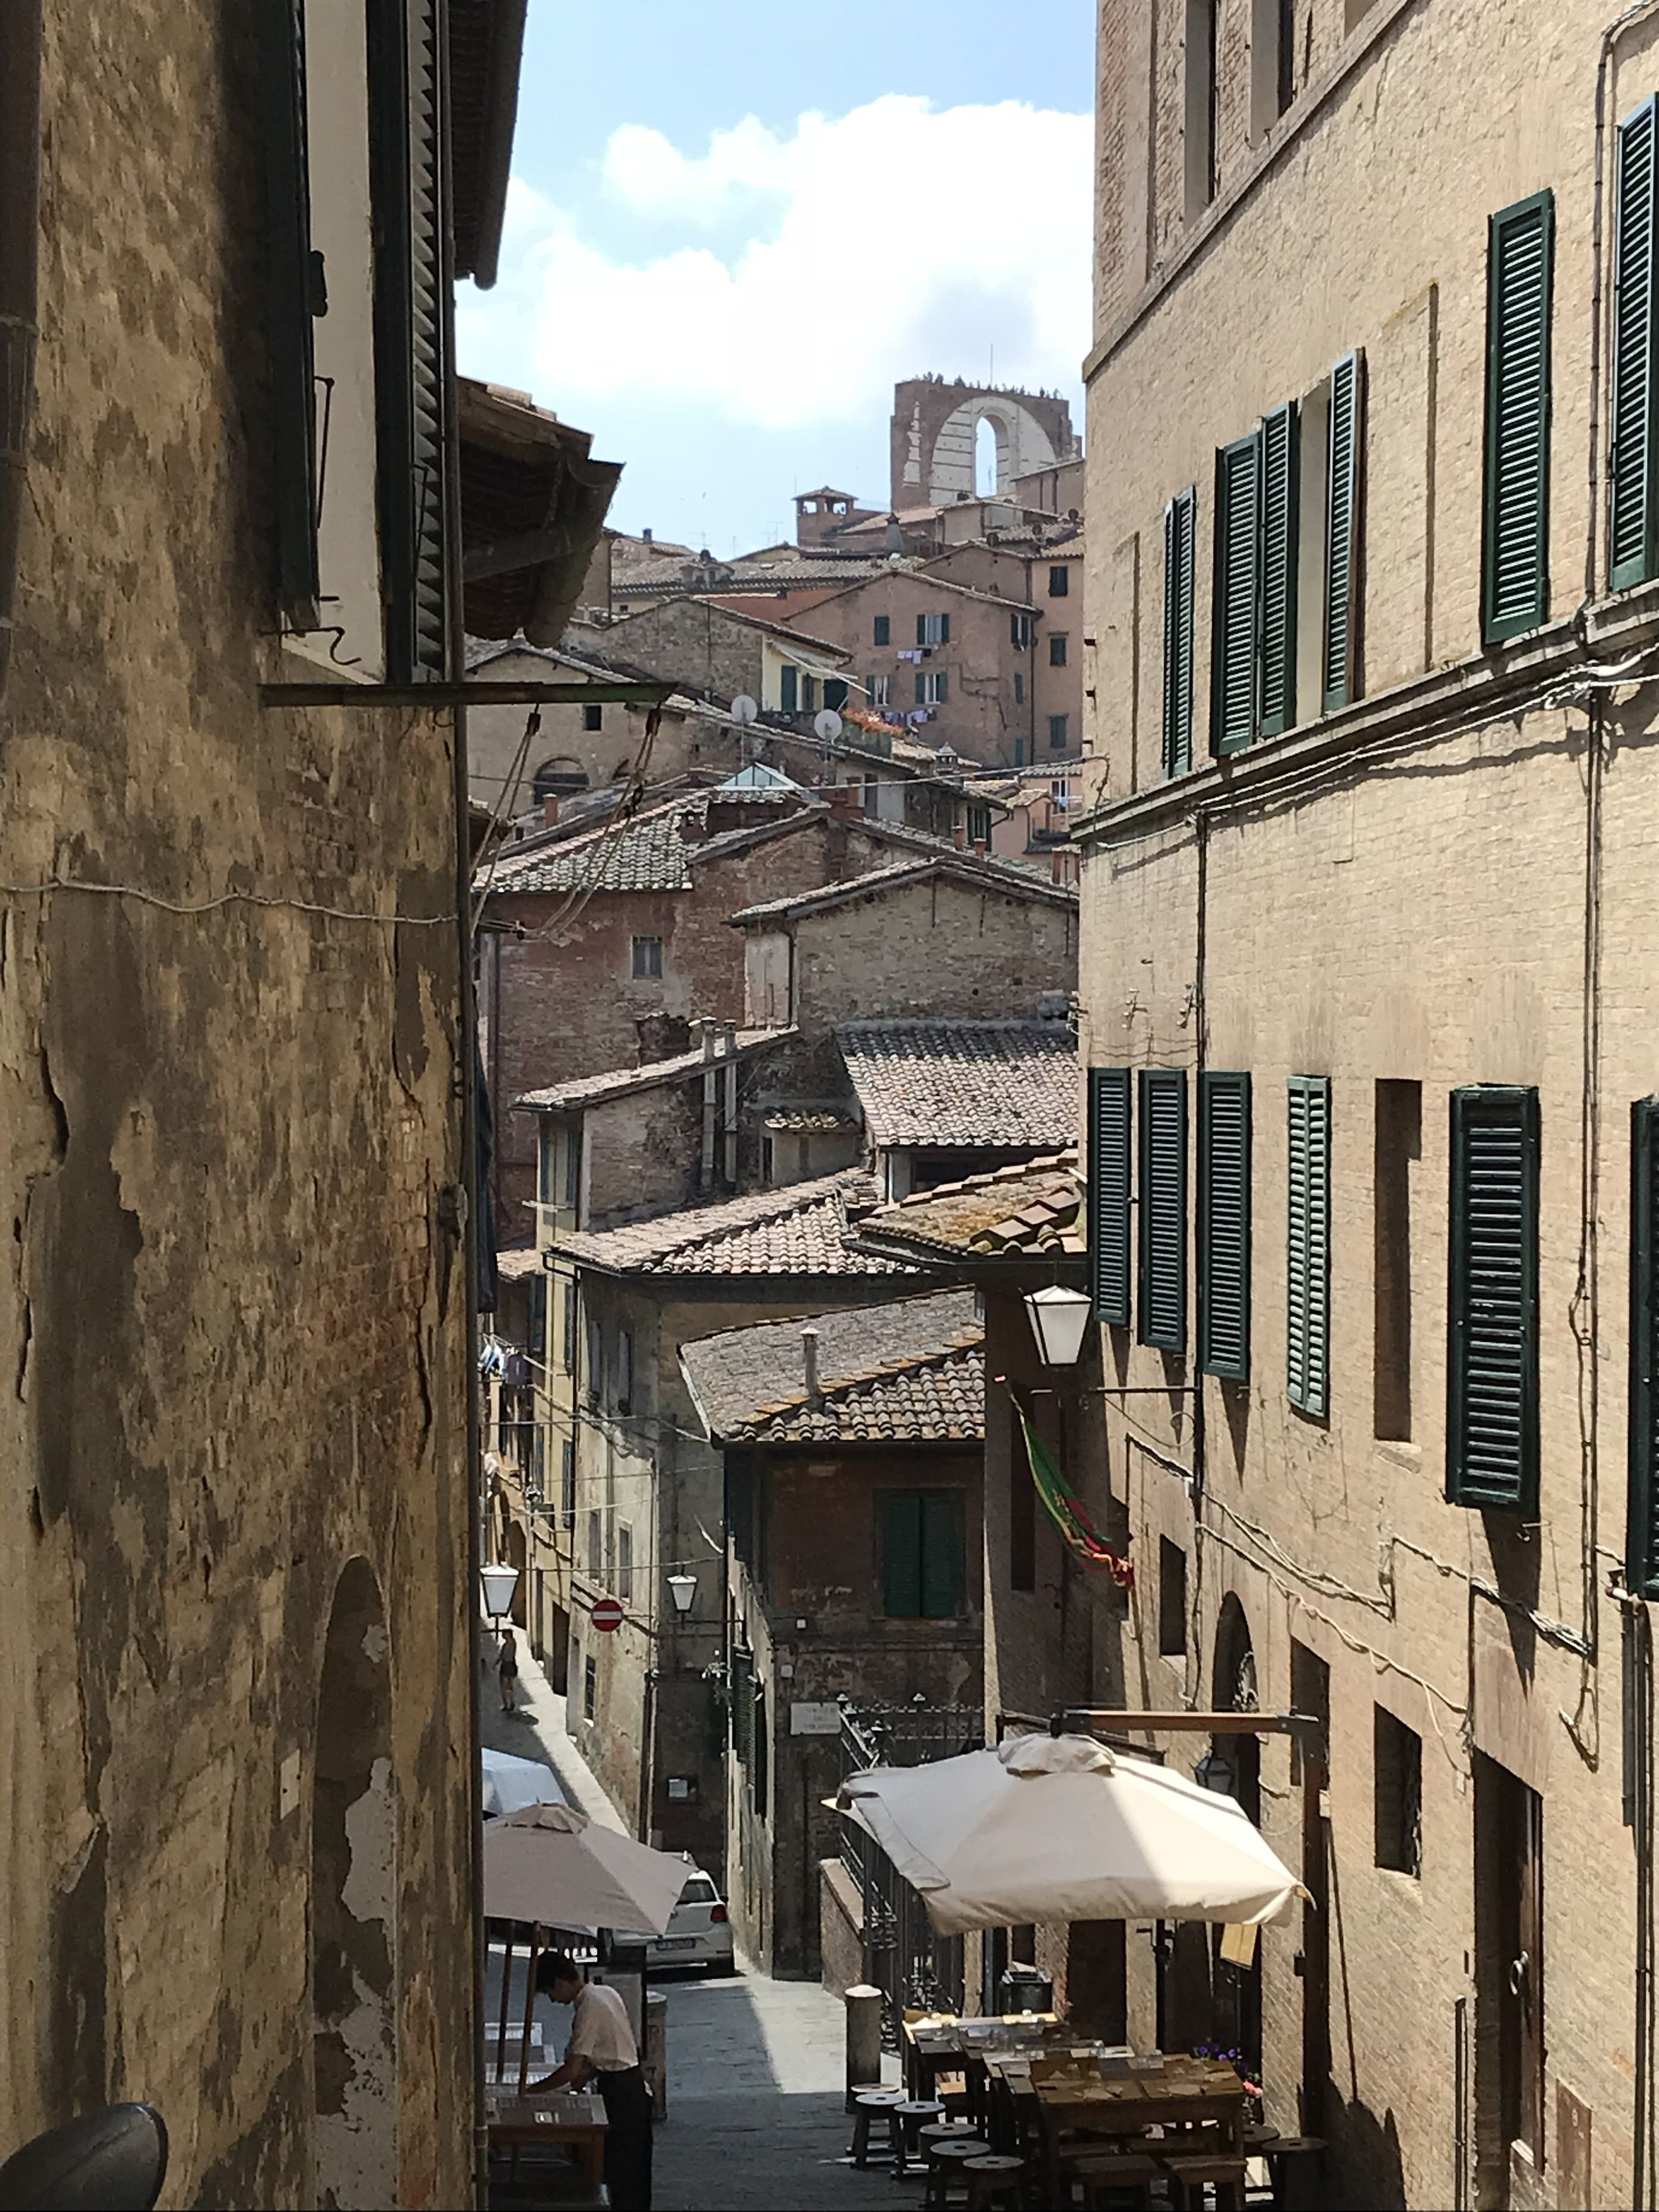 Siena street with outdoor dining and a glimpse of the old city beyond. Photo credit: Mart Martin